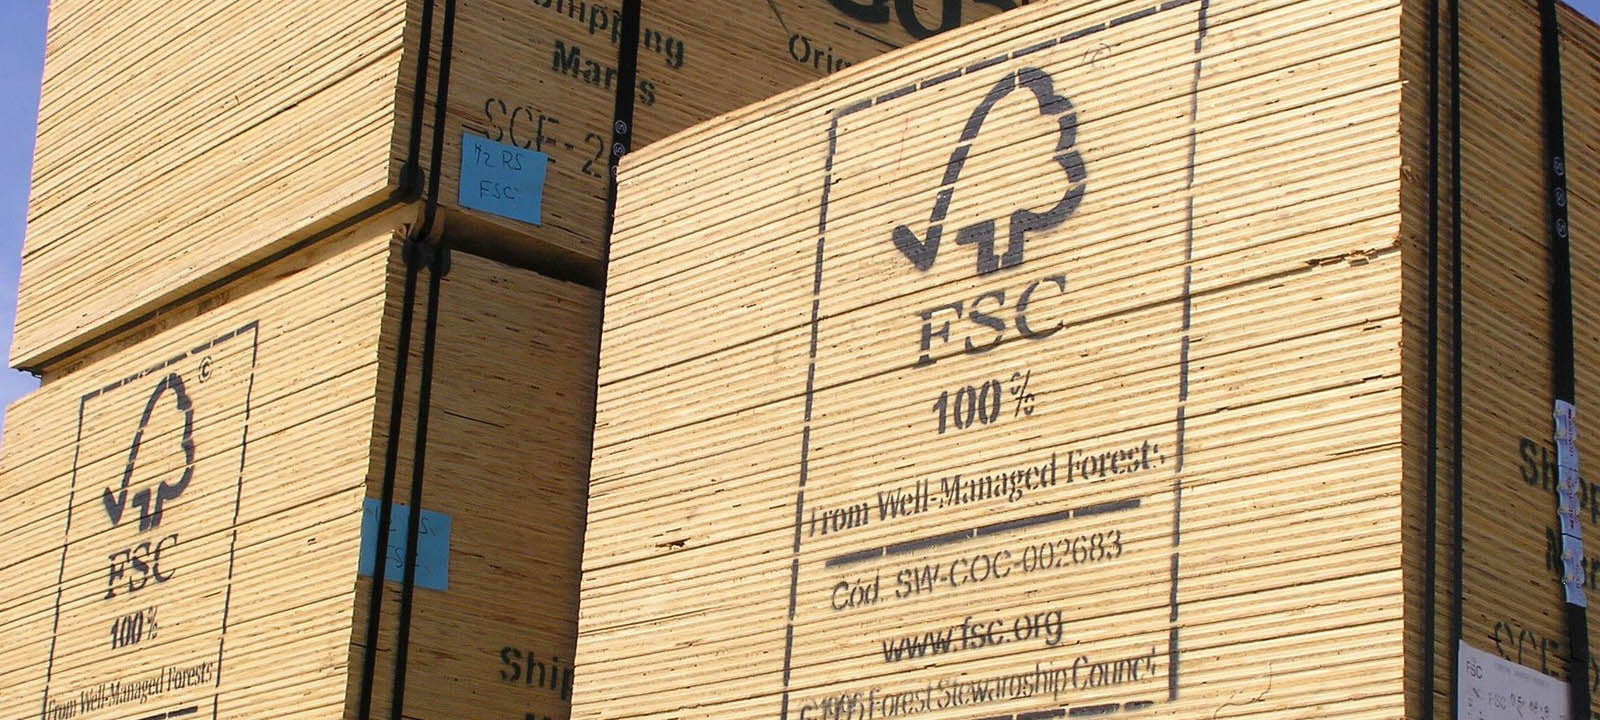 fsc-logo-sustainable-forestry